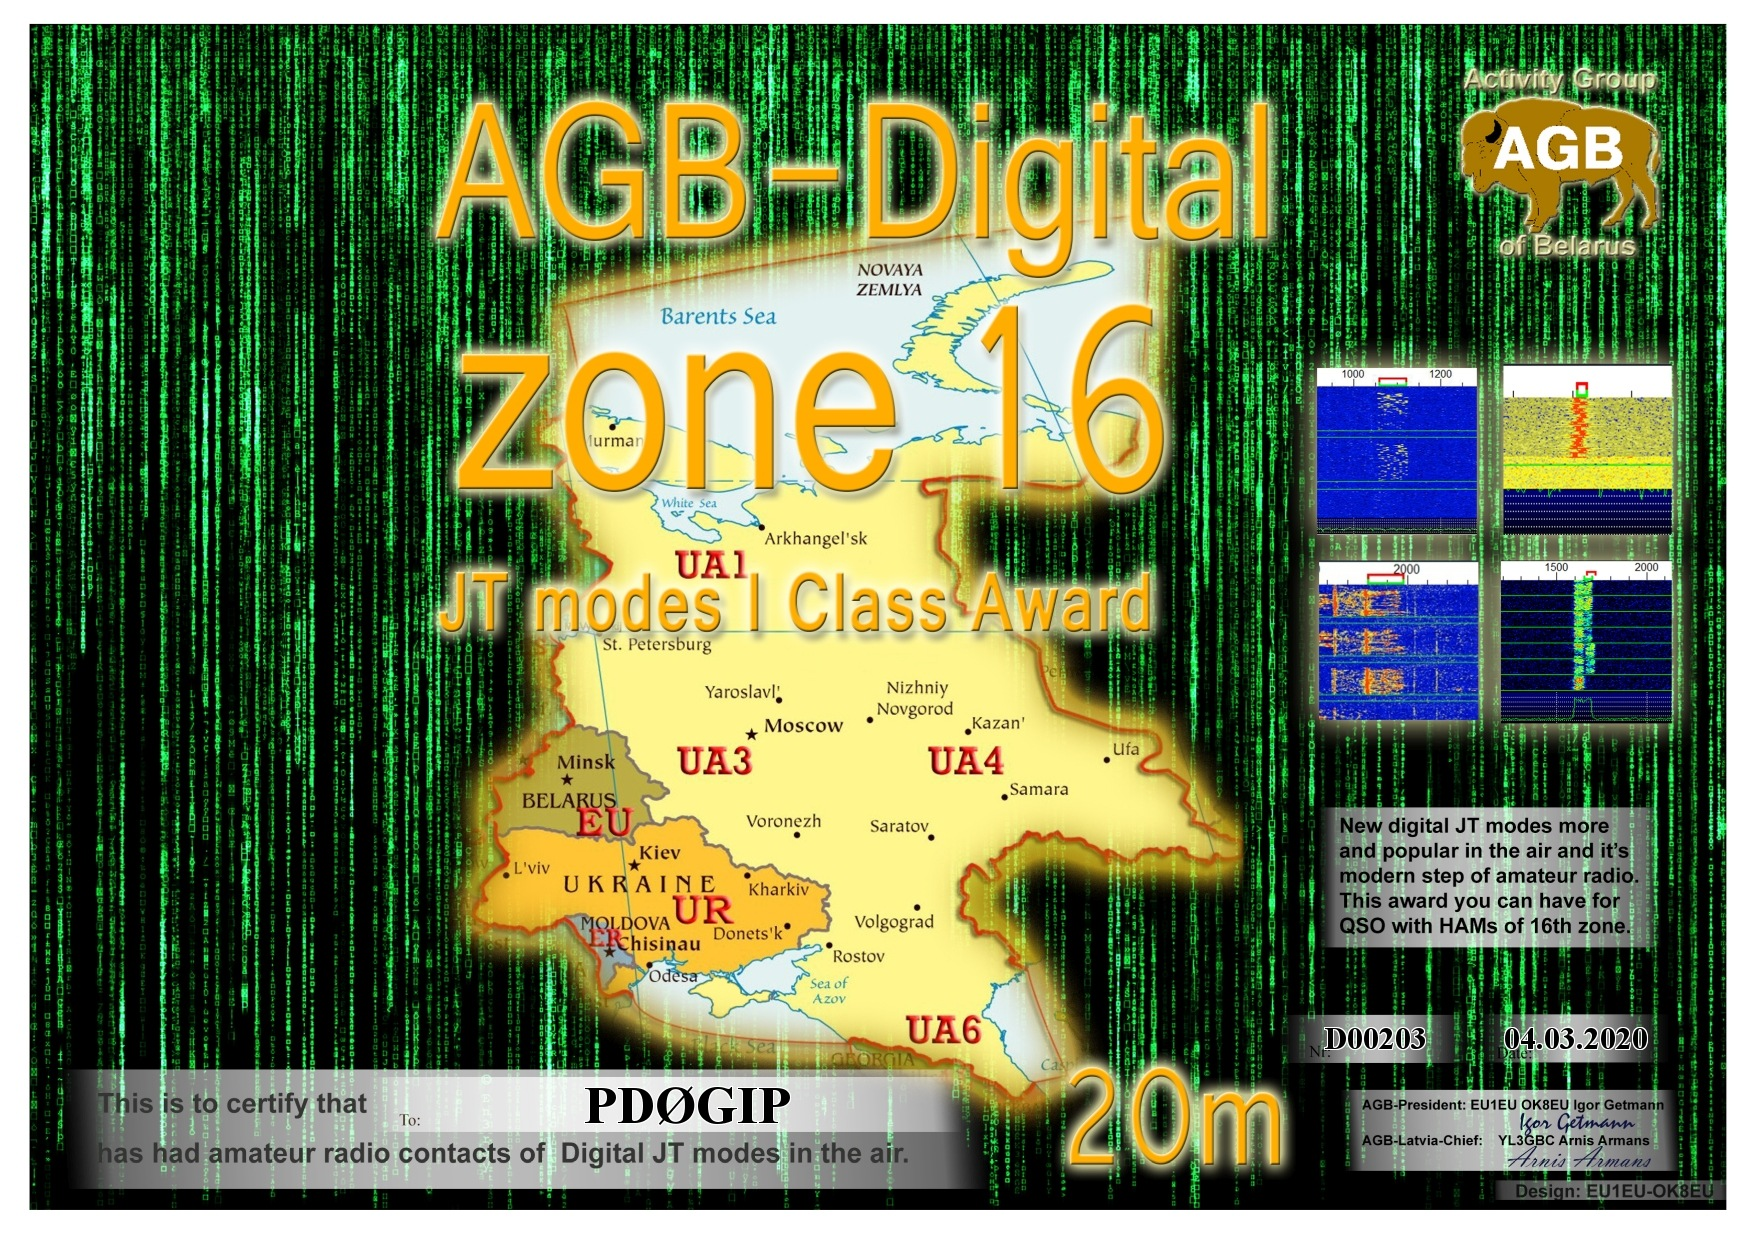 PD0GIP ZONE16 20M I AGB